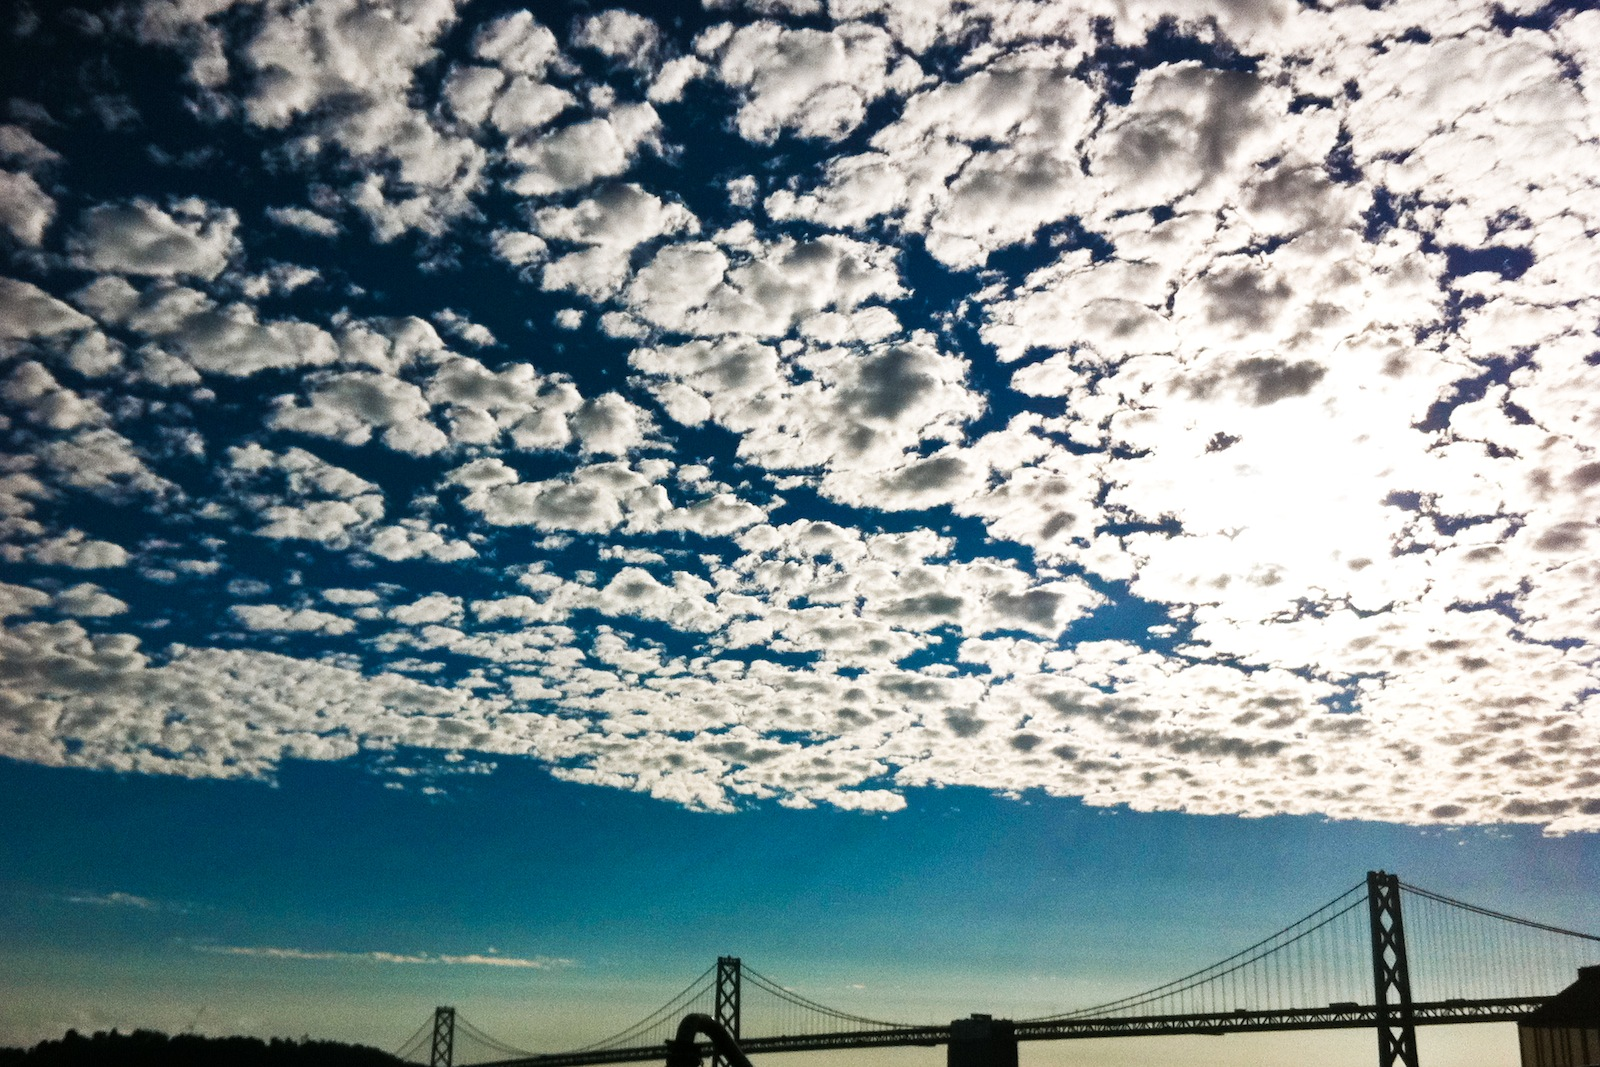 Clouds over Bay Bridge.